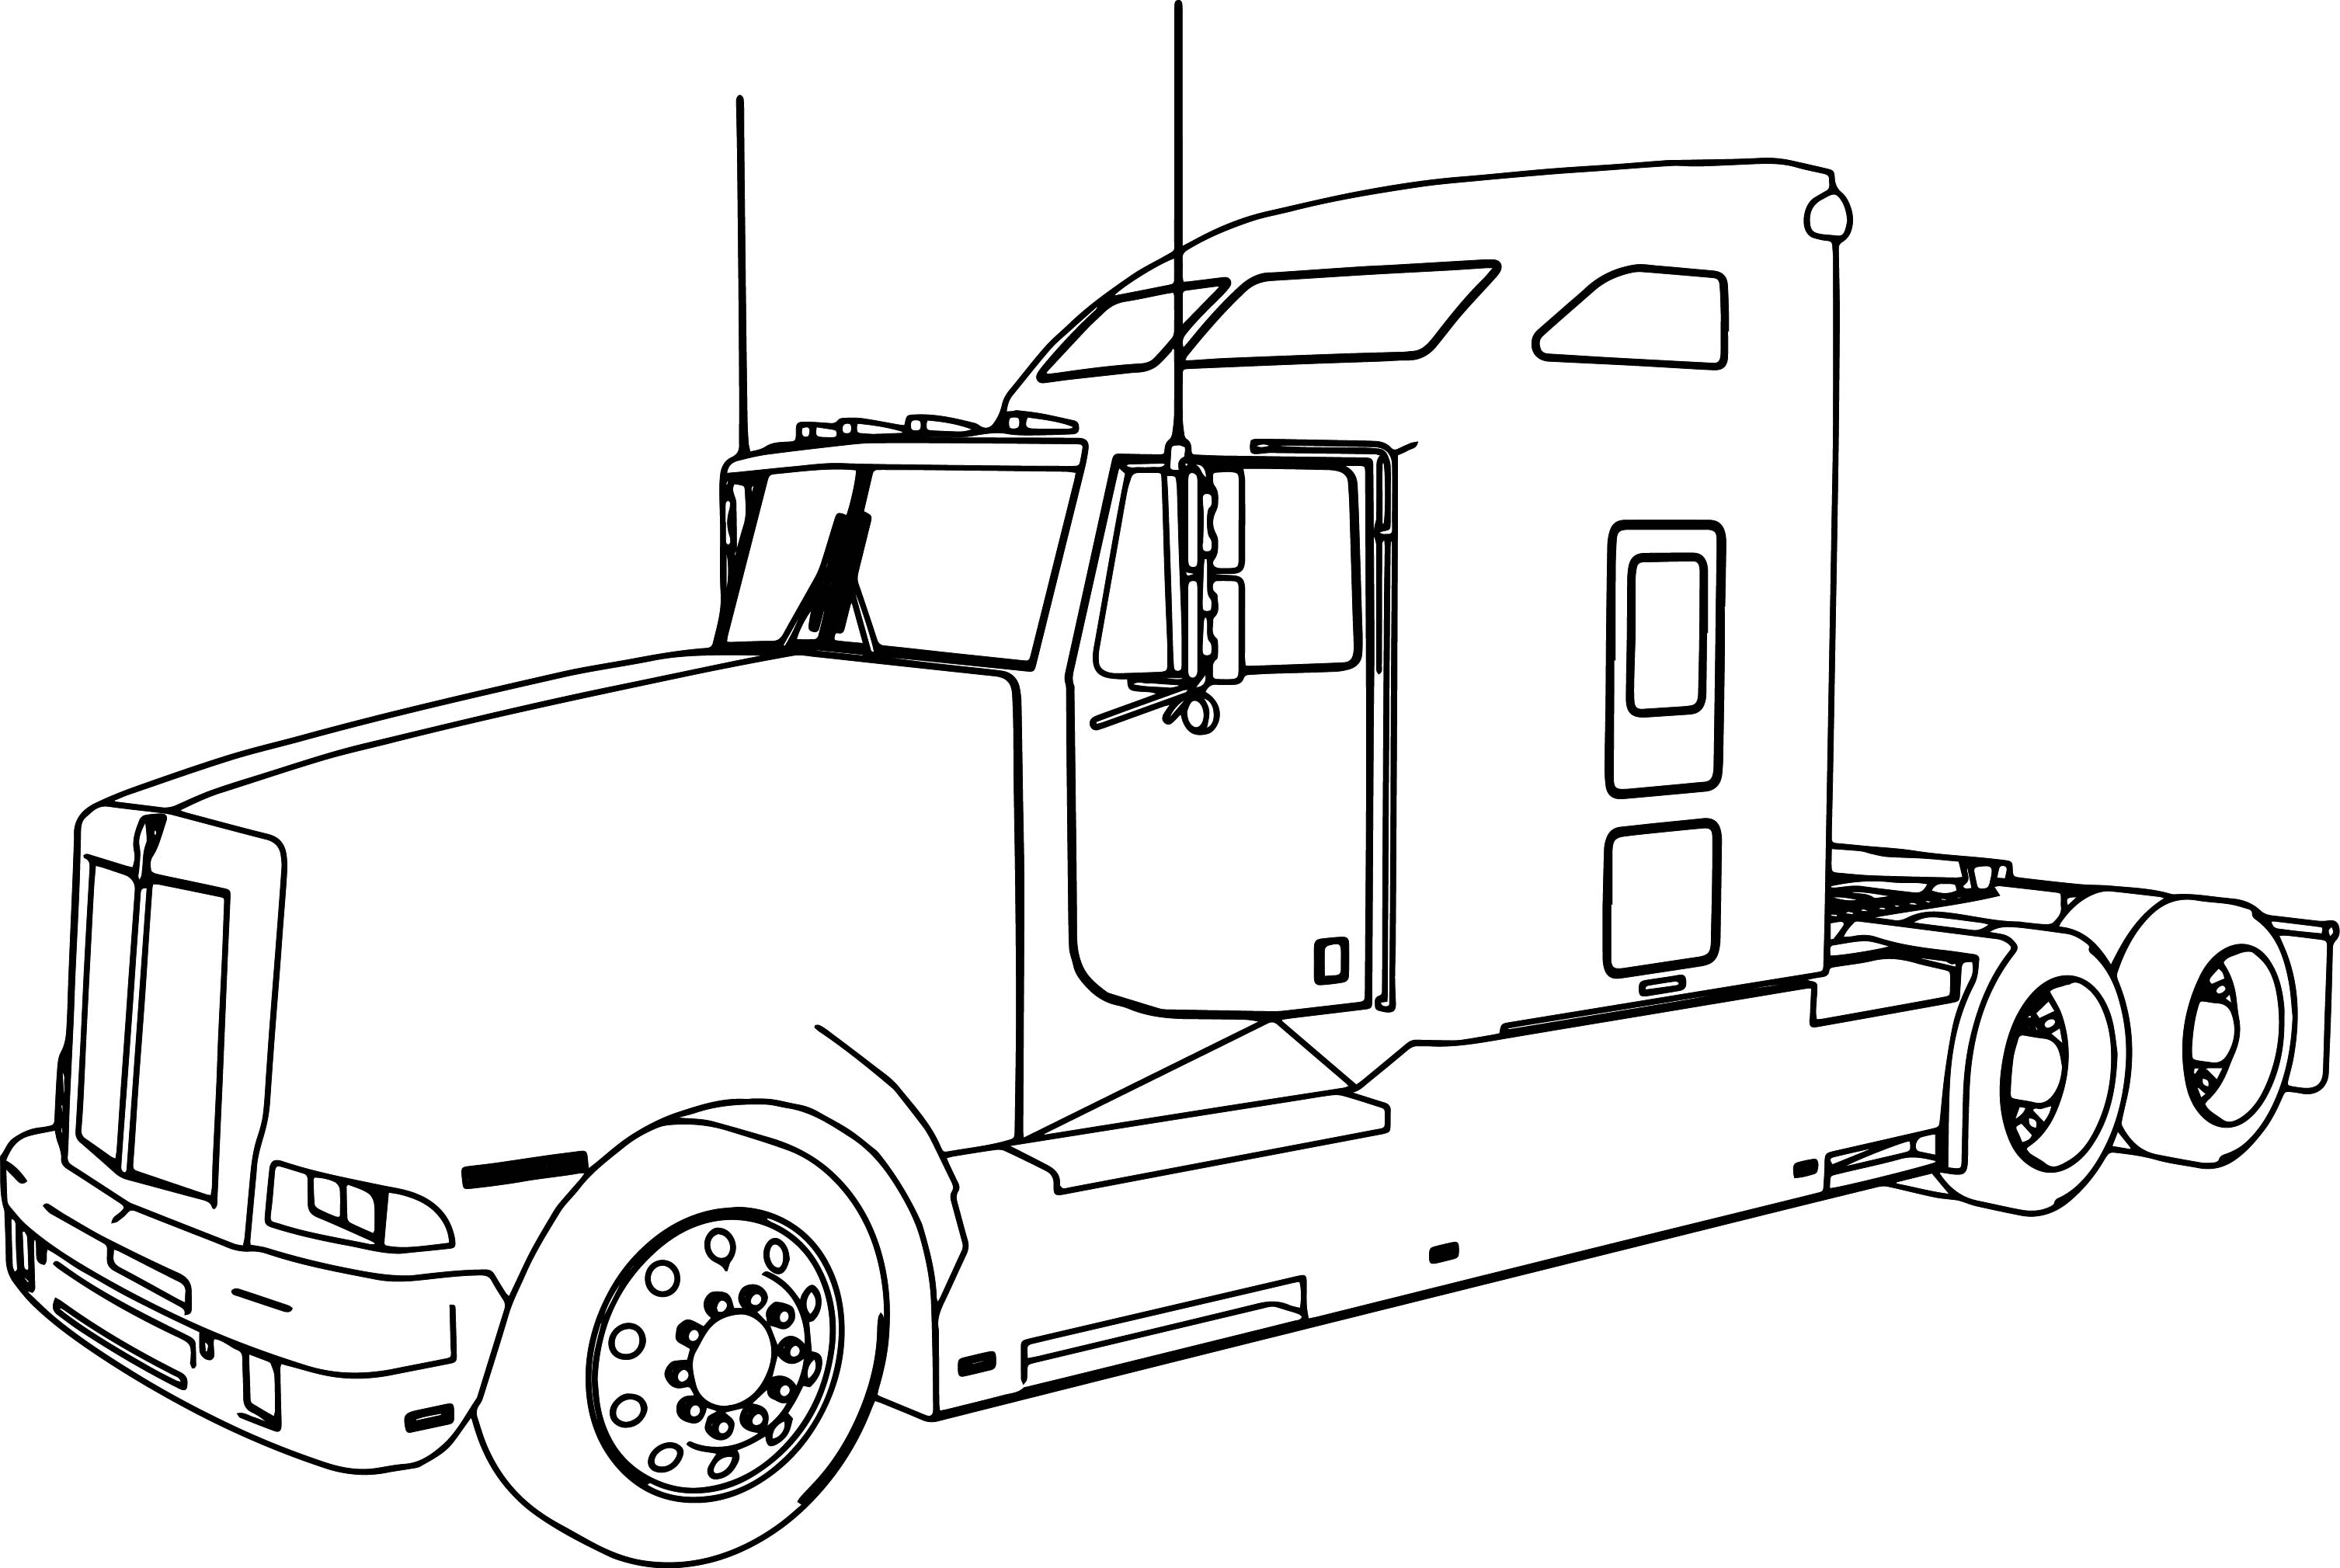 Flatbed Truck Drawing At Getdrawings